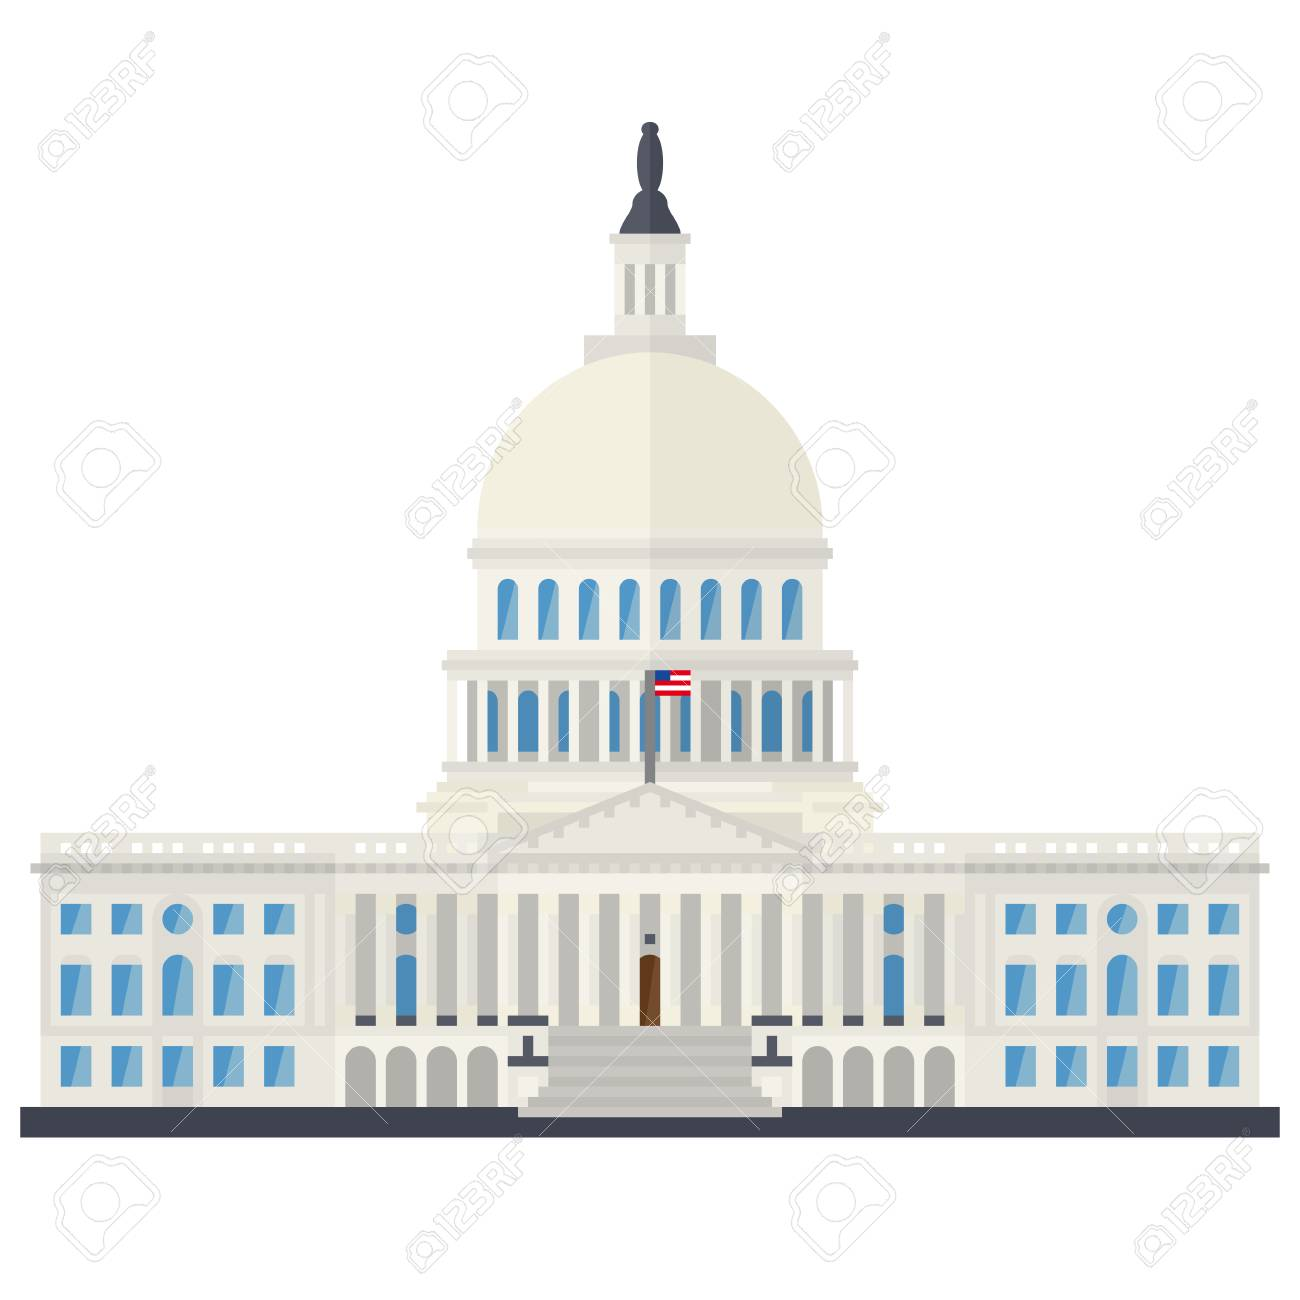 The Capitol building at Washington, D.C., USA, flat design isolated vector illustration - 124925986